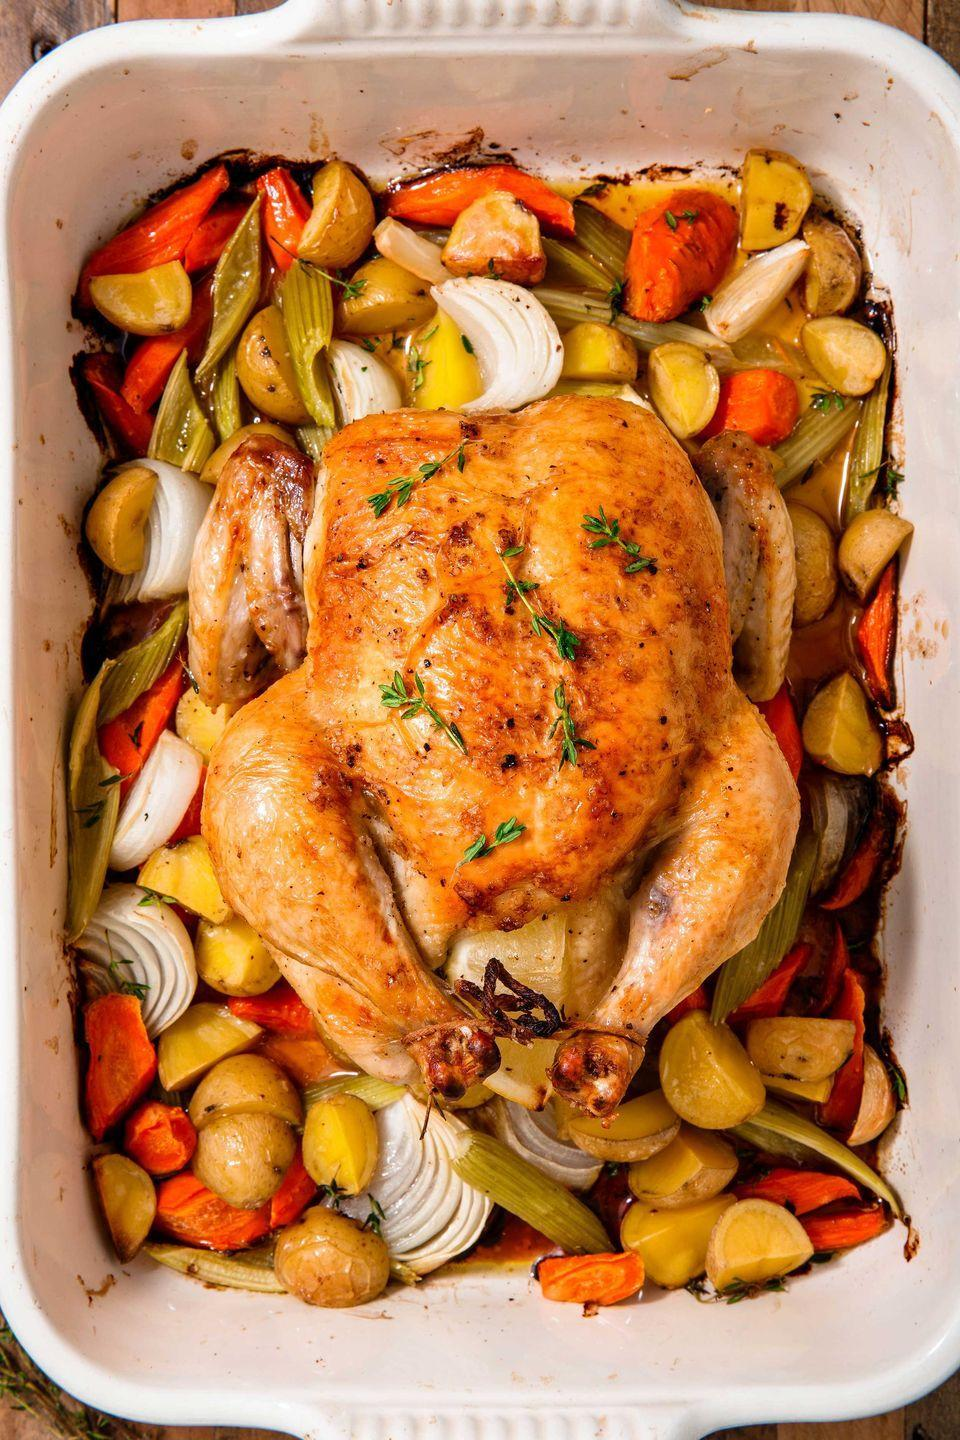 "<p>You need this classic in your arsenal. </p><p>Get the recipe from <a href=""https://www.delish.com/cooking/recipe-ideas/a22813471/classic-roast-chicken-recipe/"" rel=""nofollow noopener"" target=""_blank"" data-ylk=""slk:Delish"" class=""link rapid-noclick-resp"">Delish</a>. </p>"